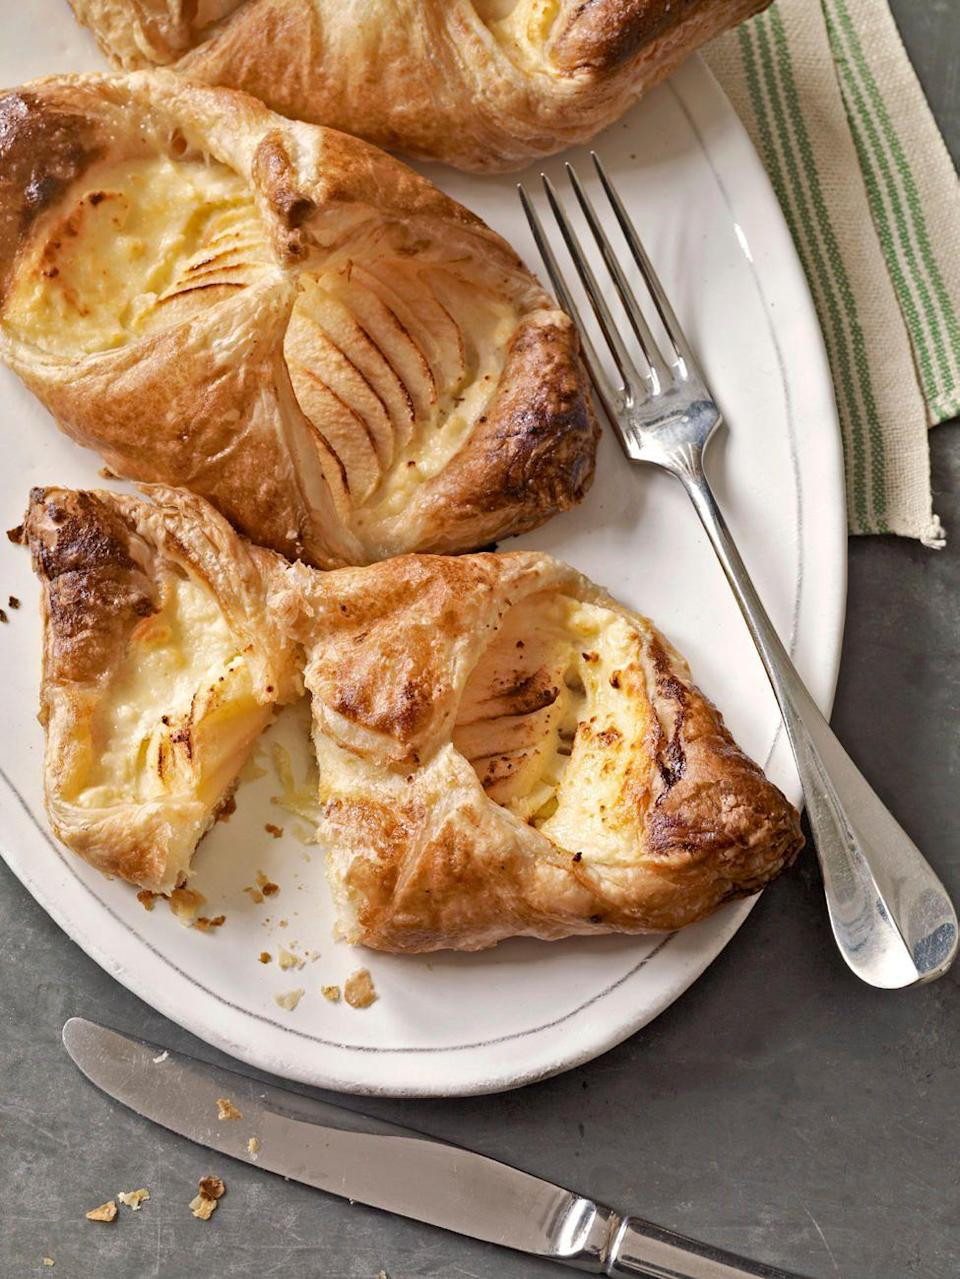 "<p>Straight from your grocer's freezer, the dough for this sweet-and-savory, apple-cheese danish rises to the occasion—no flour, food processor, or kneading required.</p><p><strong><a href=""https://www.countryliving.com/food-drinks/recipes/a3009/apple-cheese-danish-recipe/"" rel=""nofollow noopener"" target=""_blank"" data-ylk=""slk:Get the recipe"" class=""link rapid-noclick-resp"">Get the recipe</a>.</strong></p>"